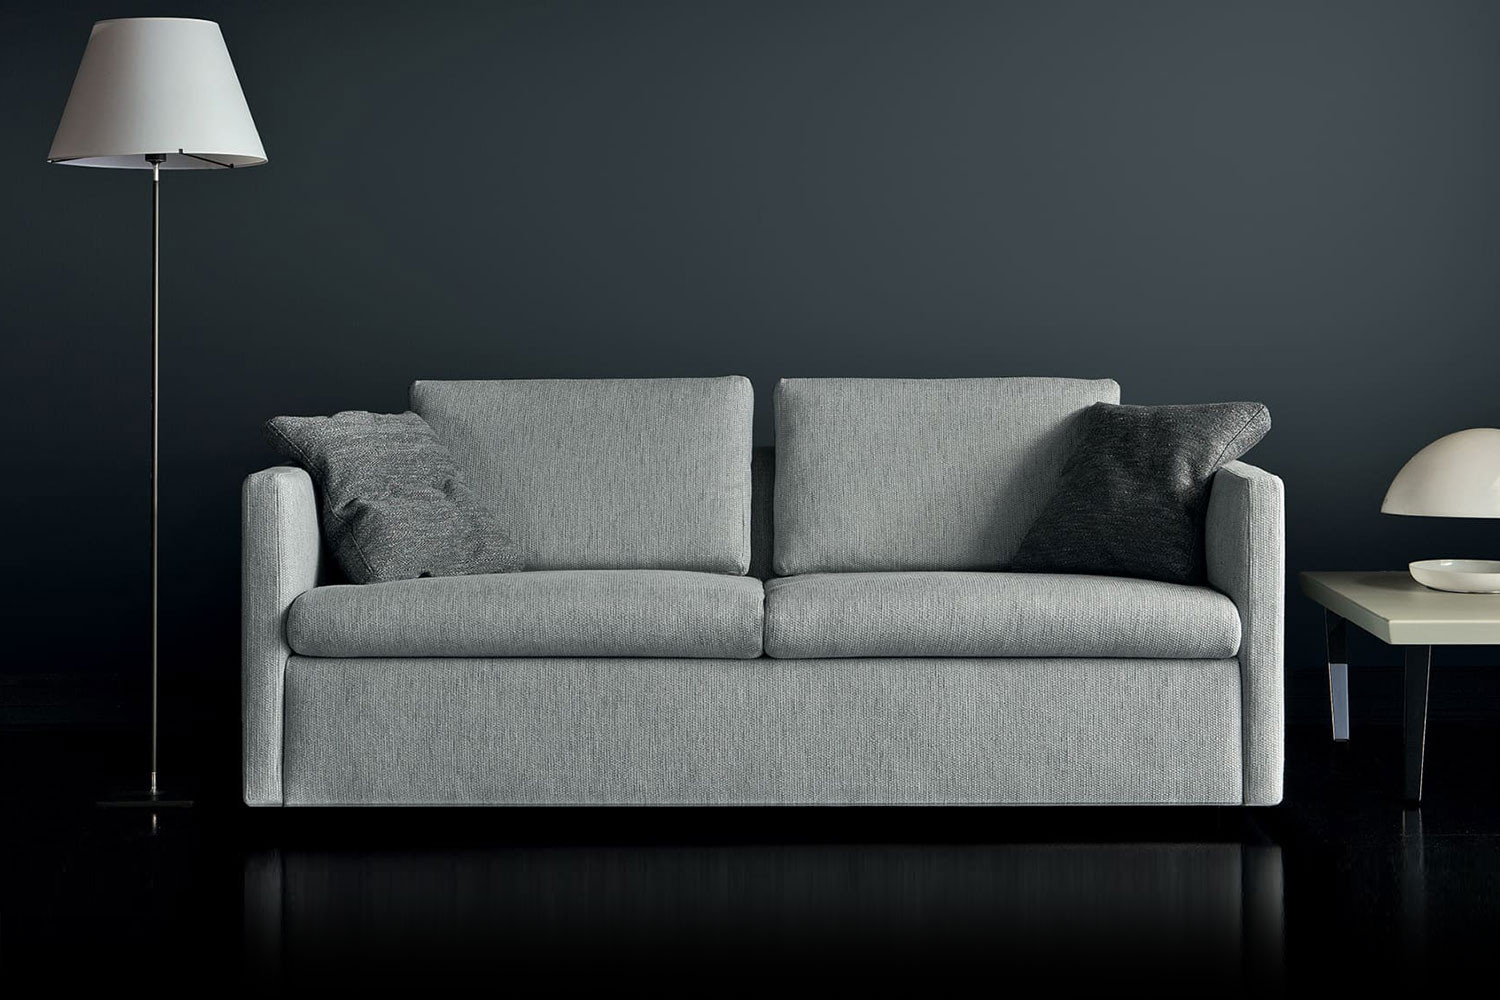 Convertible sectional sofa bed with high arms and back